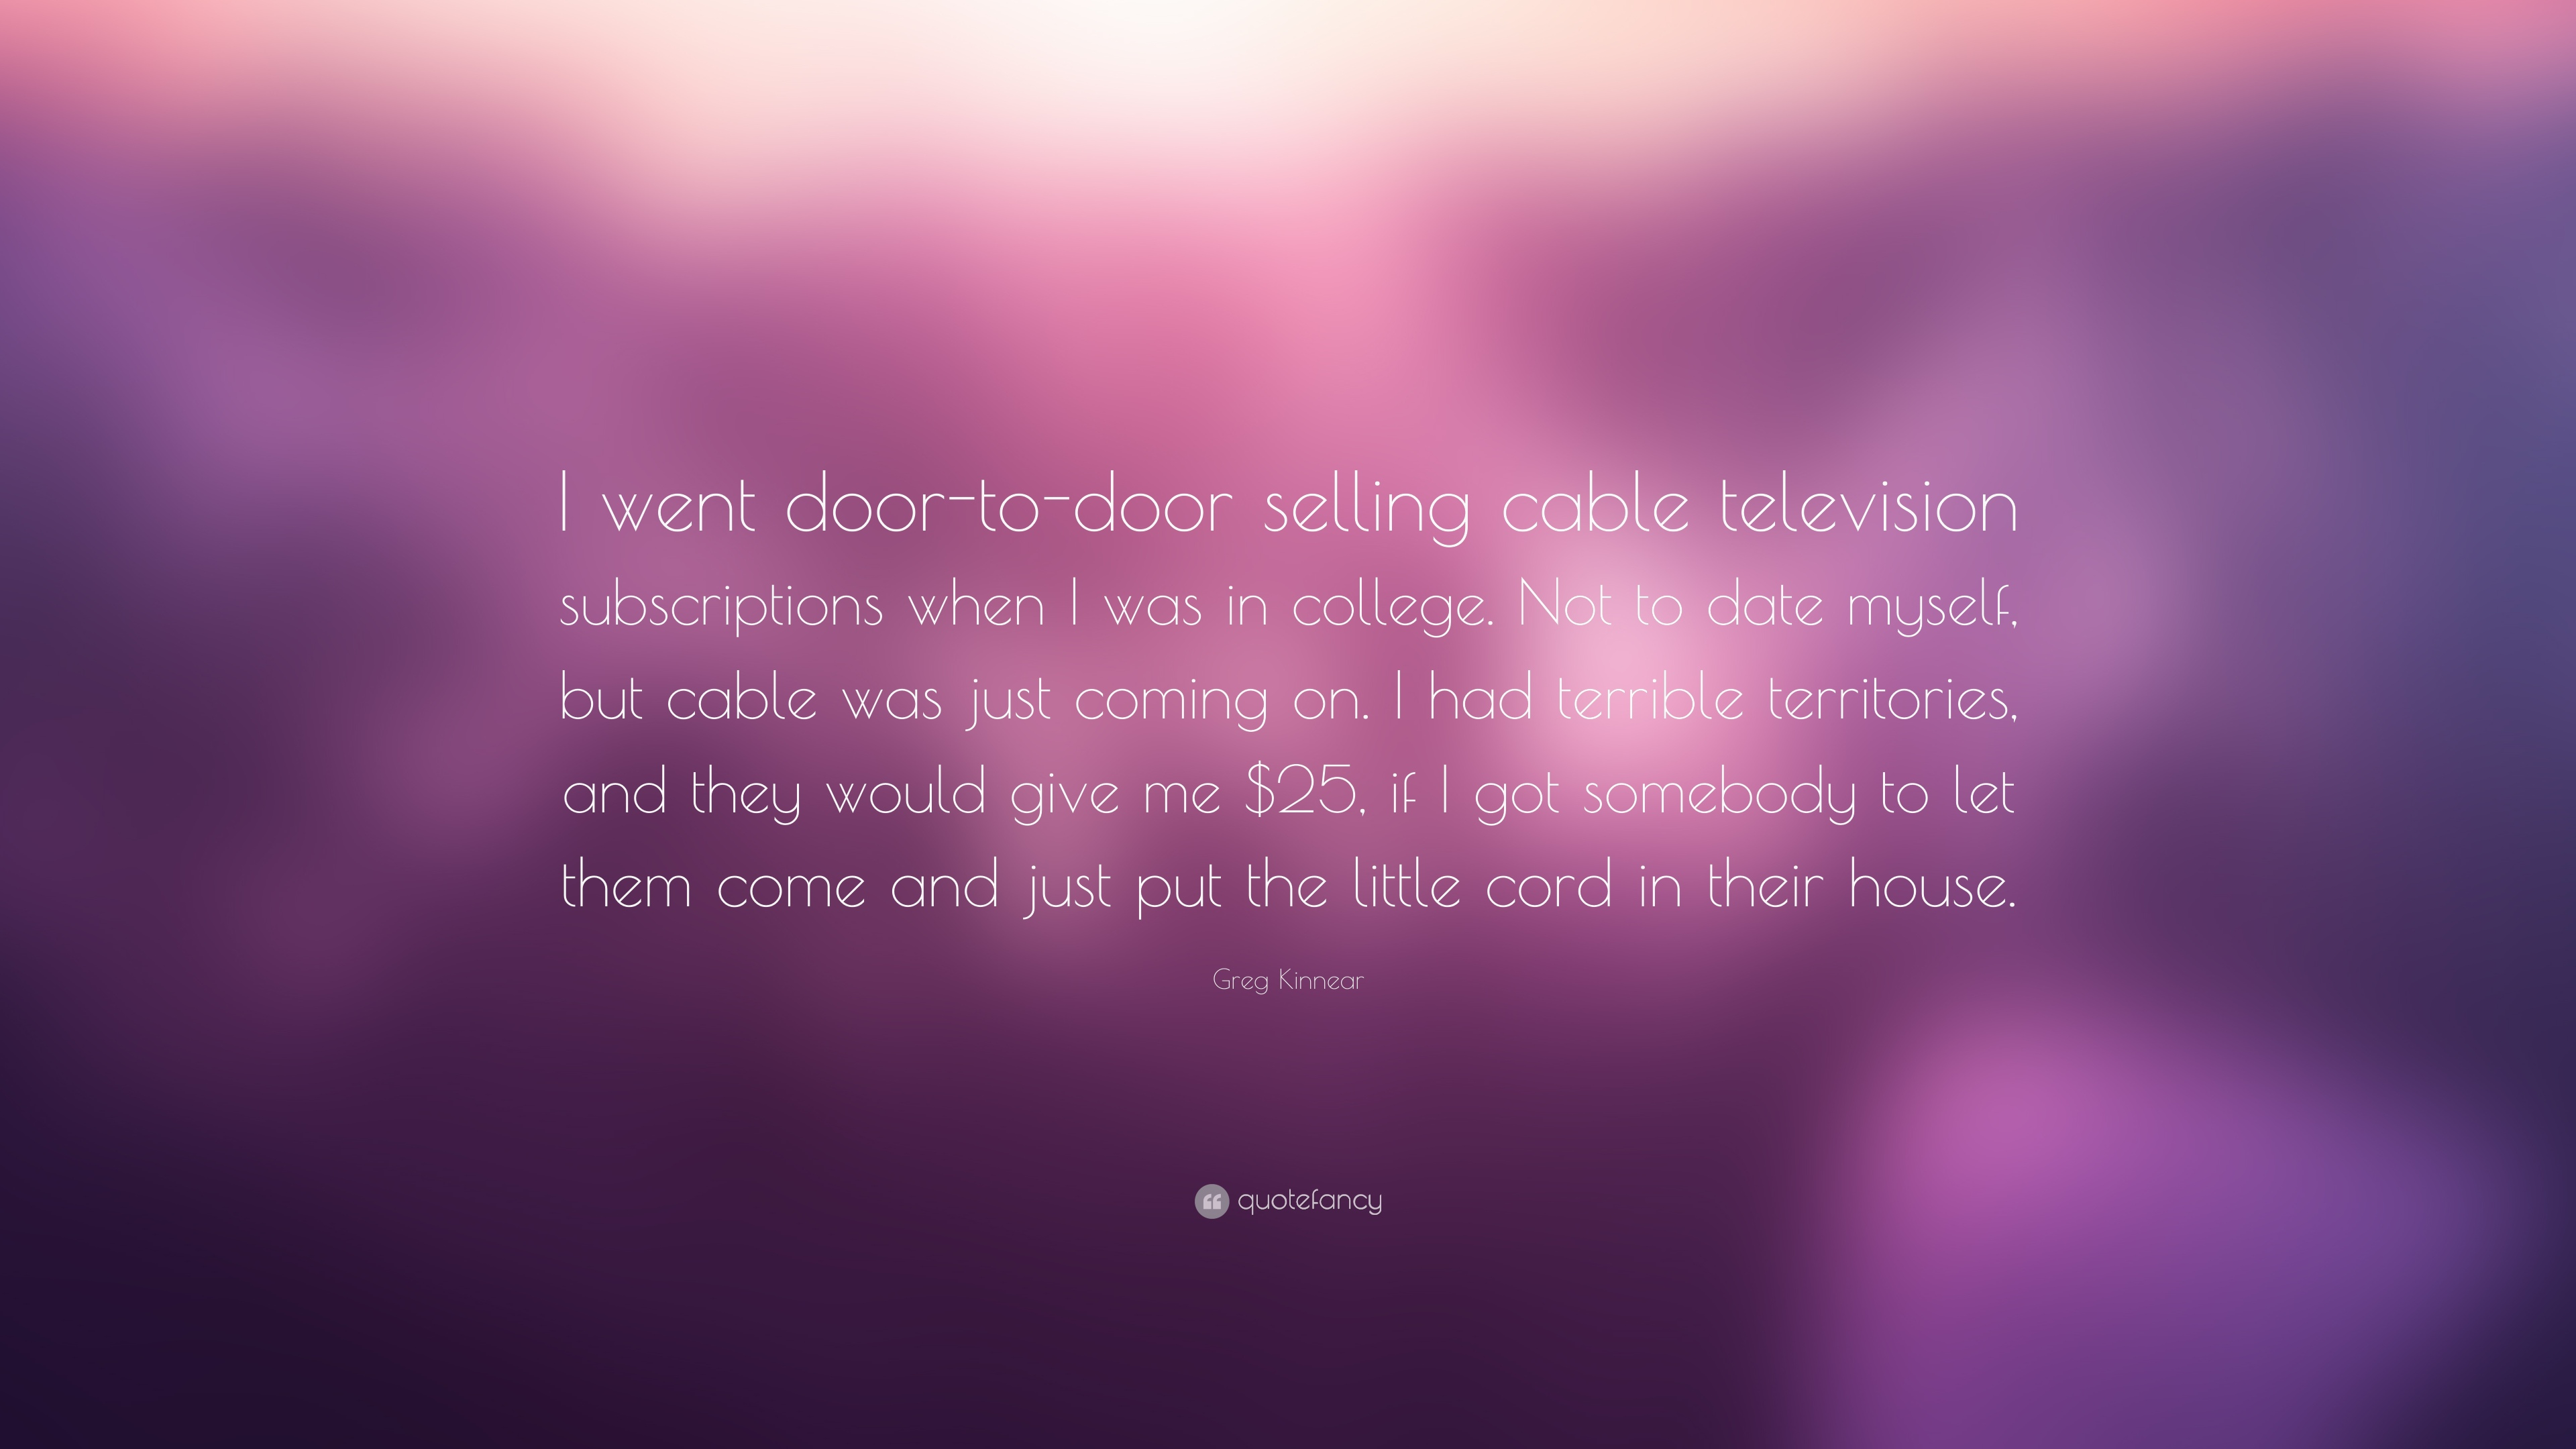 Greg Kinnear Quote: \u201cI went door-to-door selling cable television subscriptions & Greg Kinnear Quotes (53 wallpapers) - Quotefancy Pezcame.Com